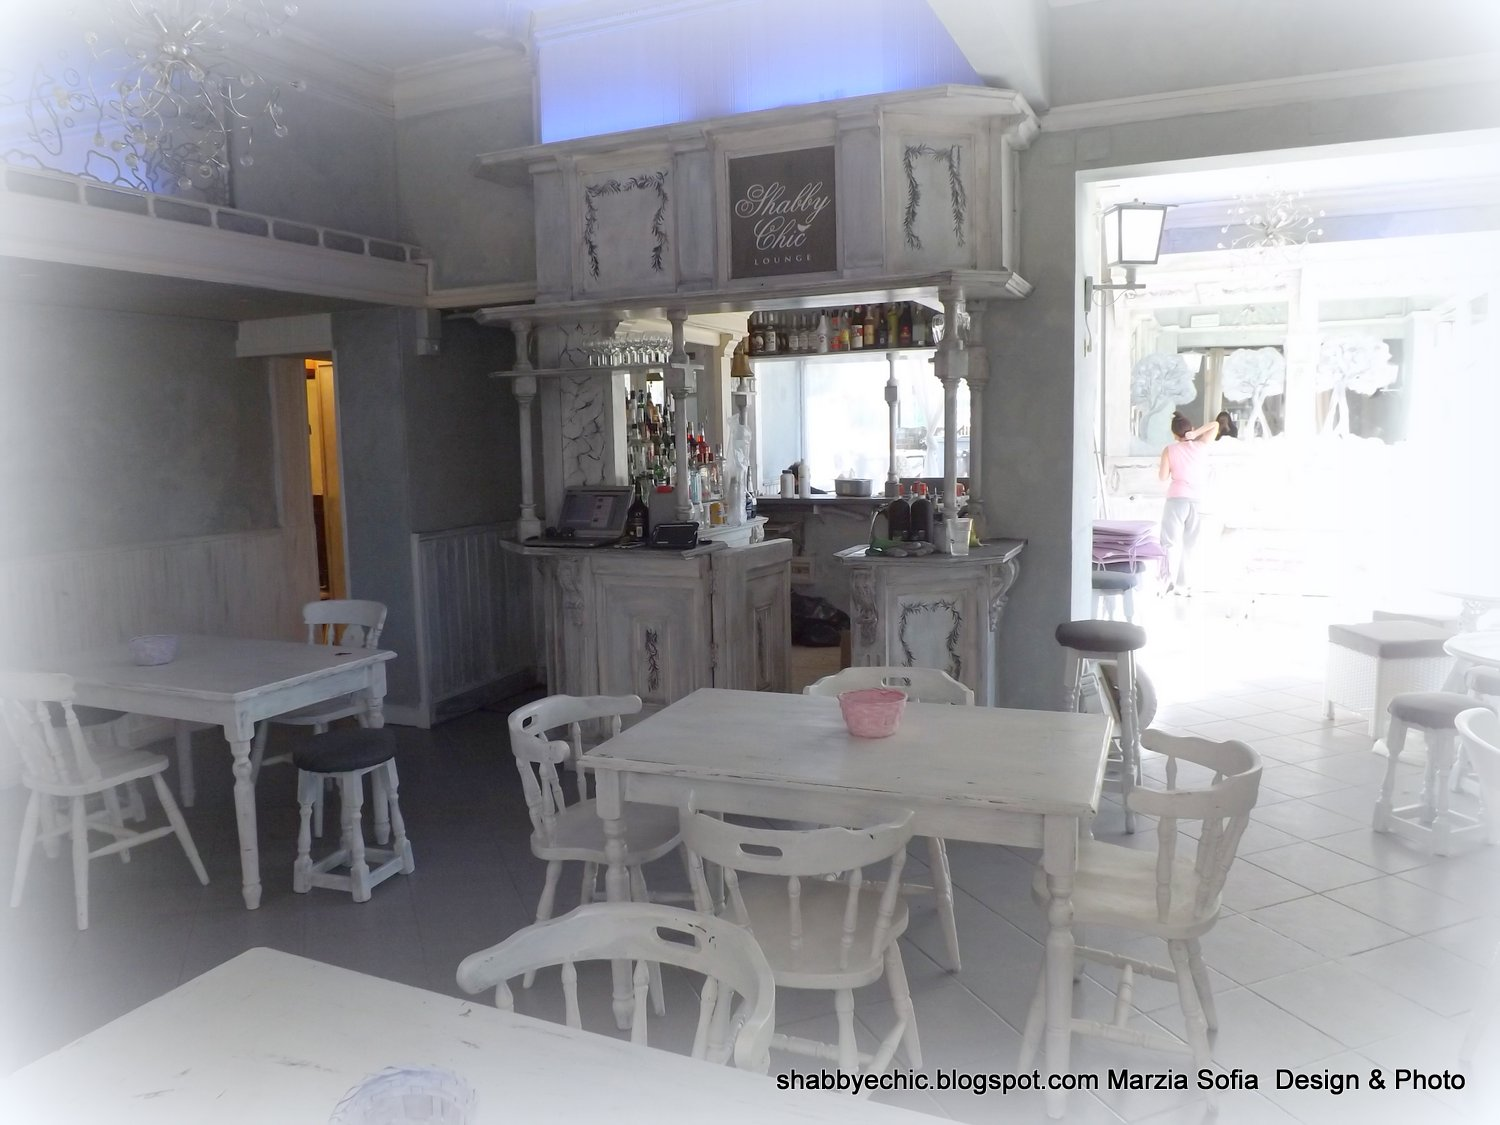 Ben noto Lo Shabby Chic Lounge RR95